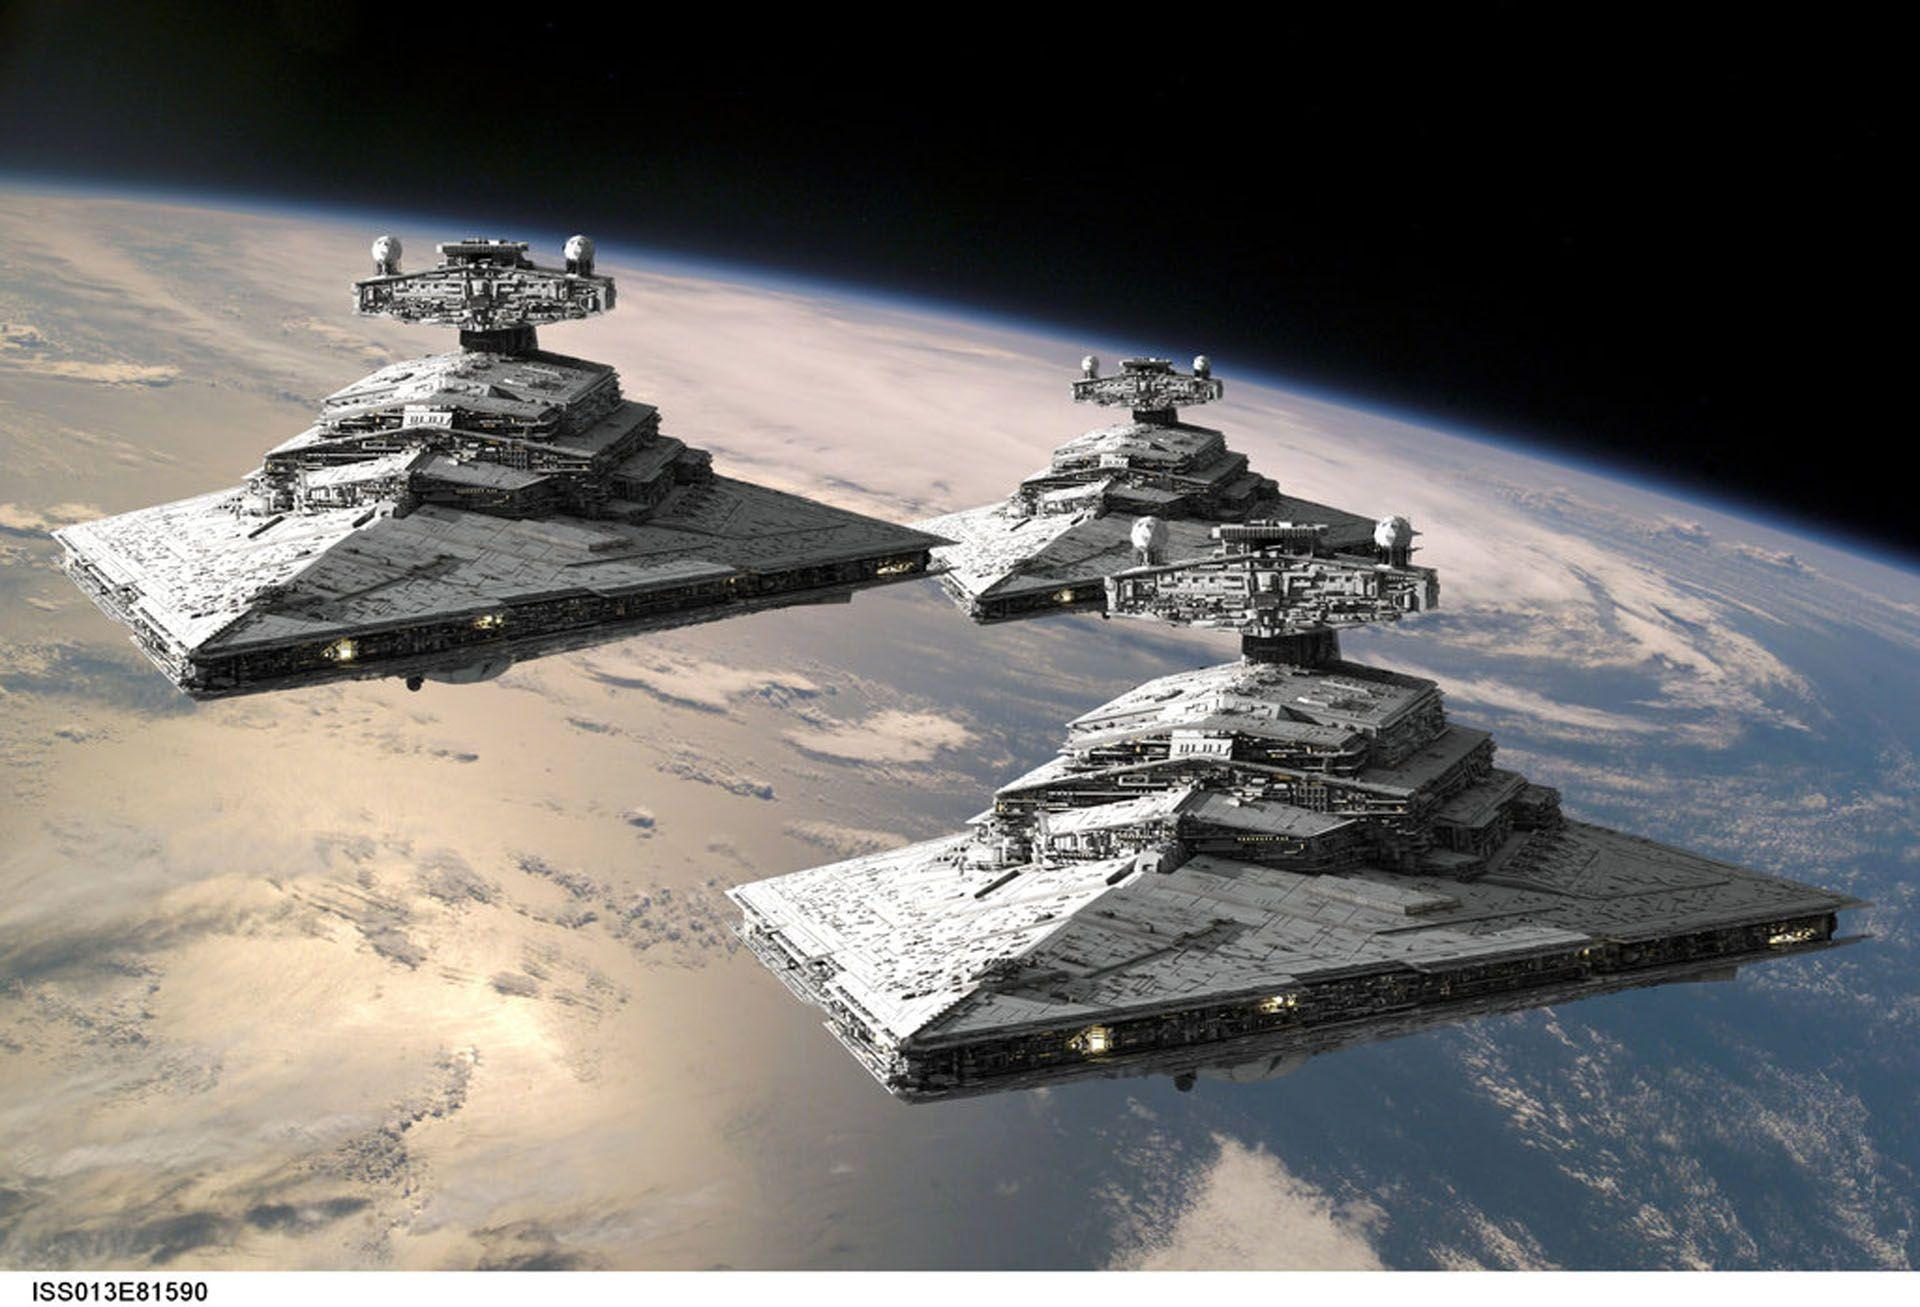 s star wars starship wallpapers - photo #22